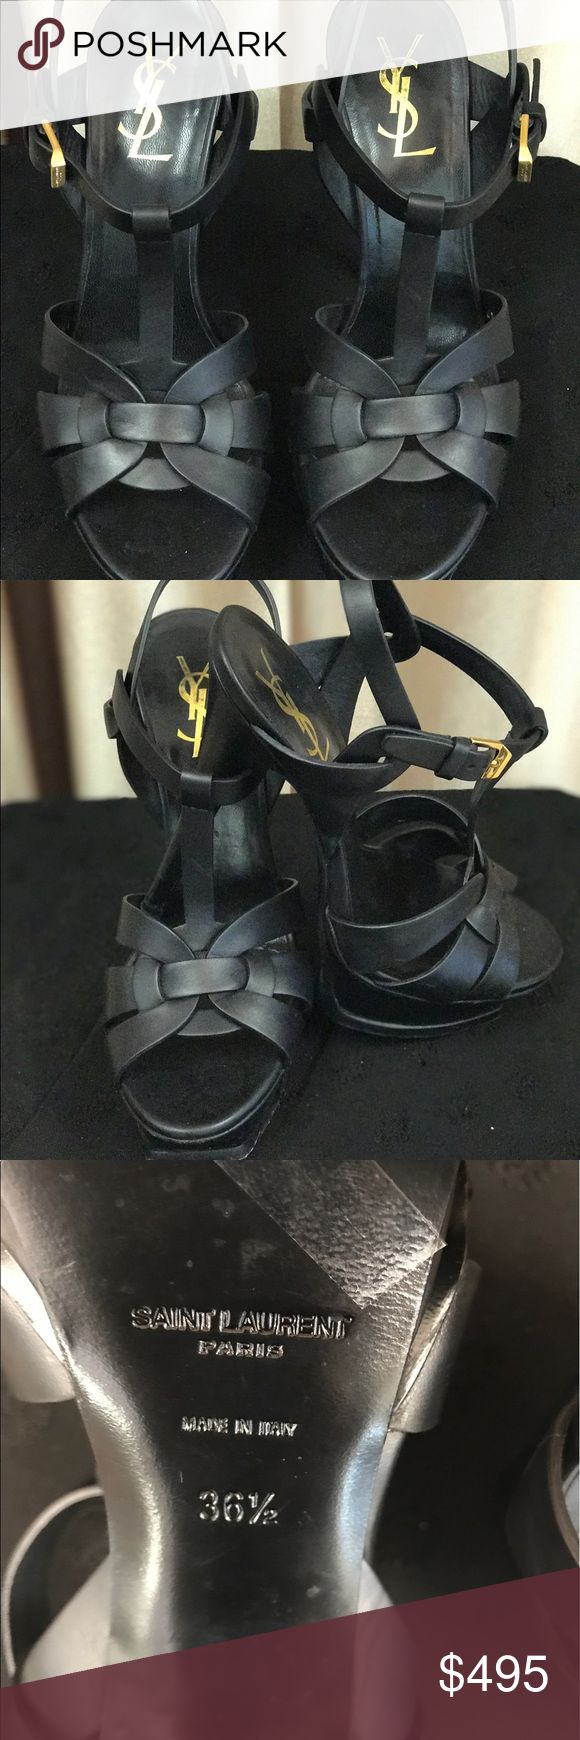 💯24 hr. SALE Ysl black open toe mint condition 💯24 HOUR SALE💯This beauty worn only to try on. Practically brand new! Yves Saint Laurent Shoes Heels